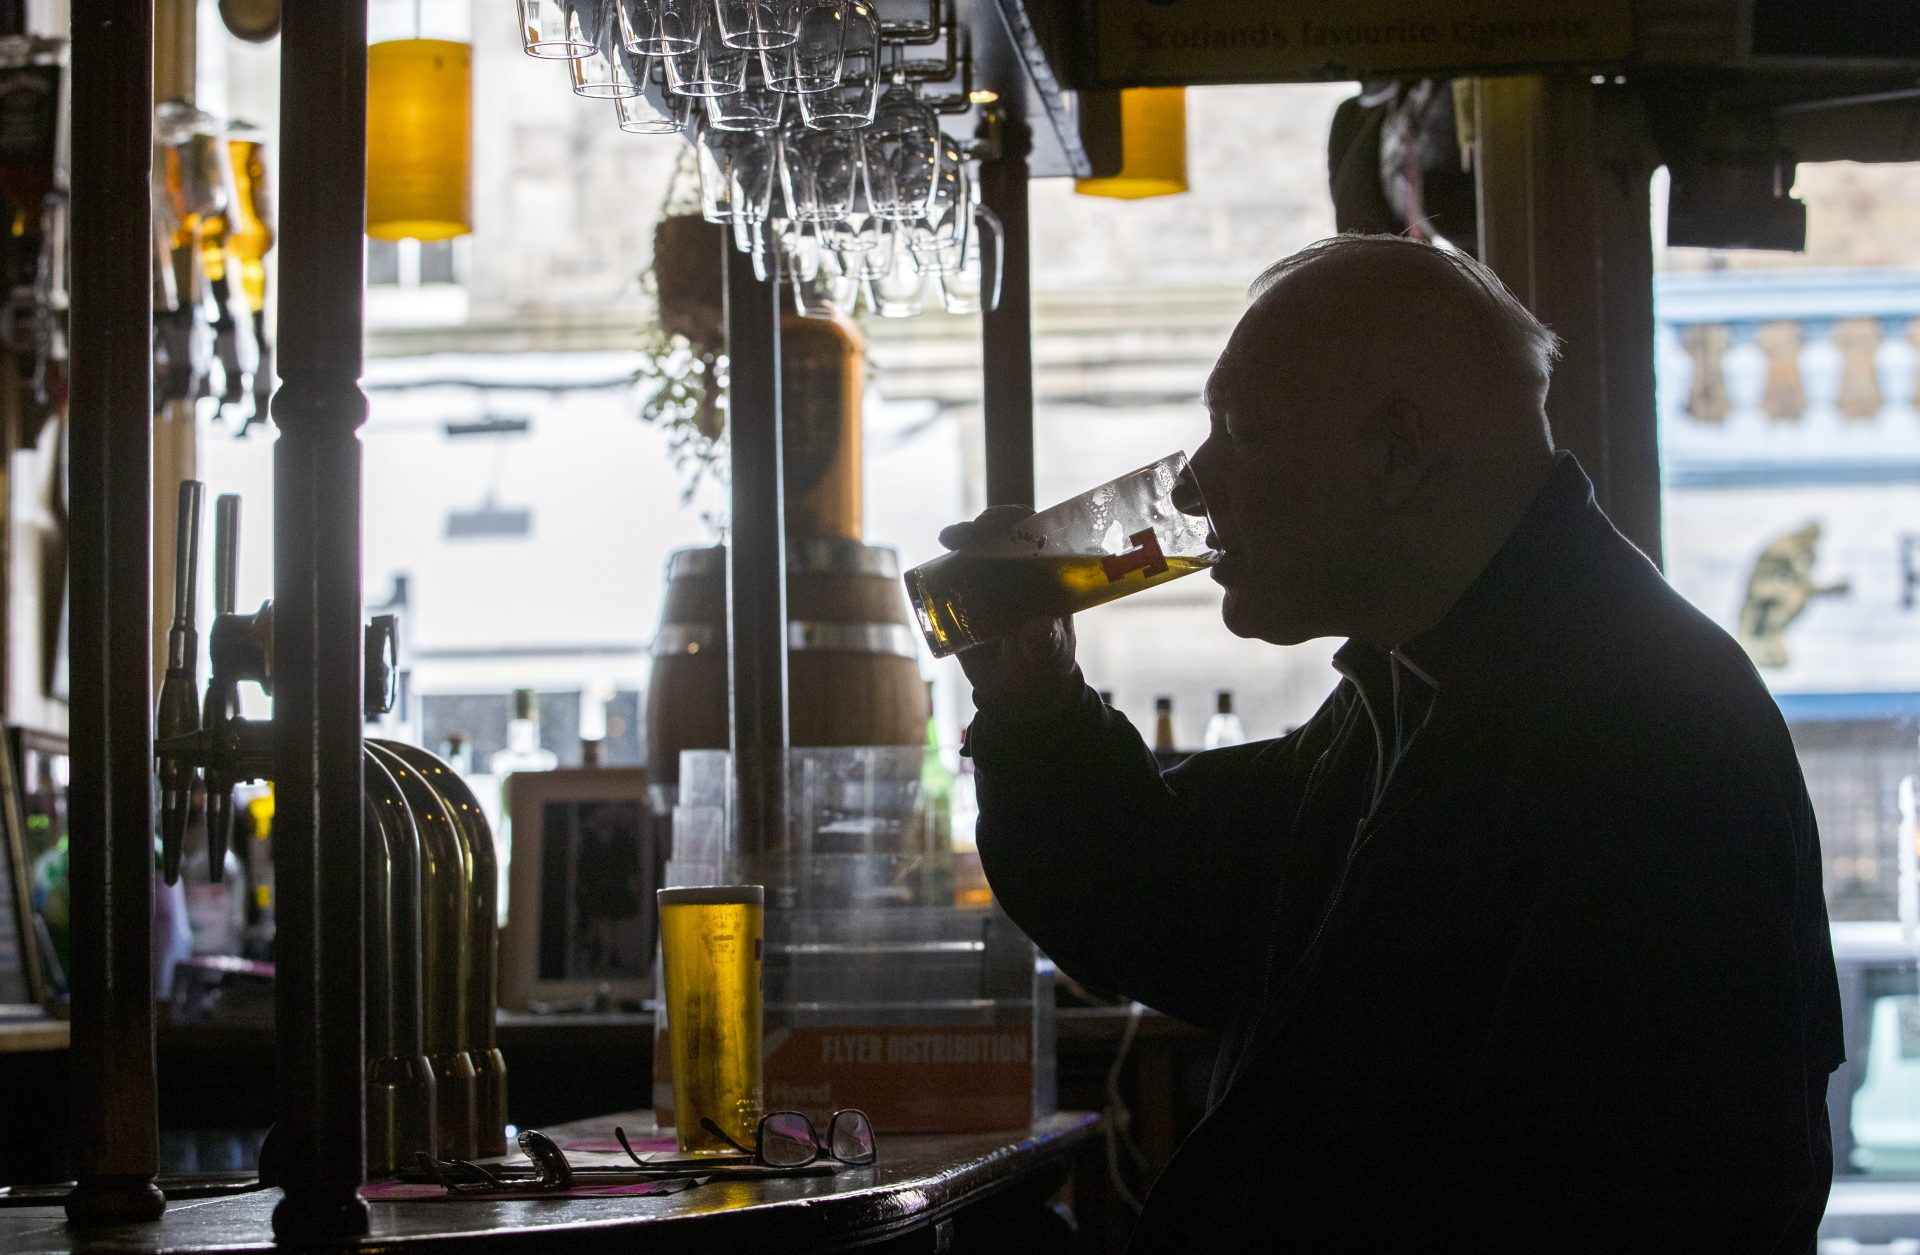 A customer at the Waverley, Edinburgh, enjoys a drink at the bar. Alcohol can now be served inside pubs and restaurants, which are allowed to stay open until 22.30, as Scotland moves to Level 2 restrictions to ease out of lockdown. Credit: Jane Barlow/PA Wire/PA Images